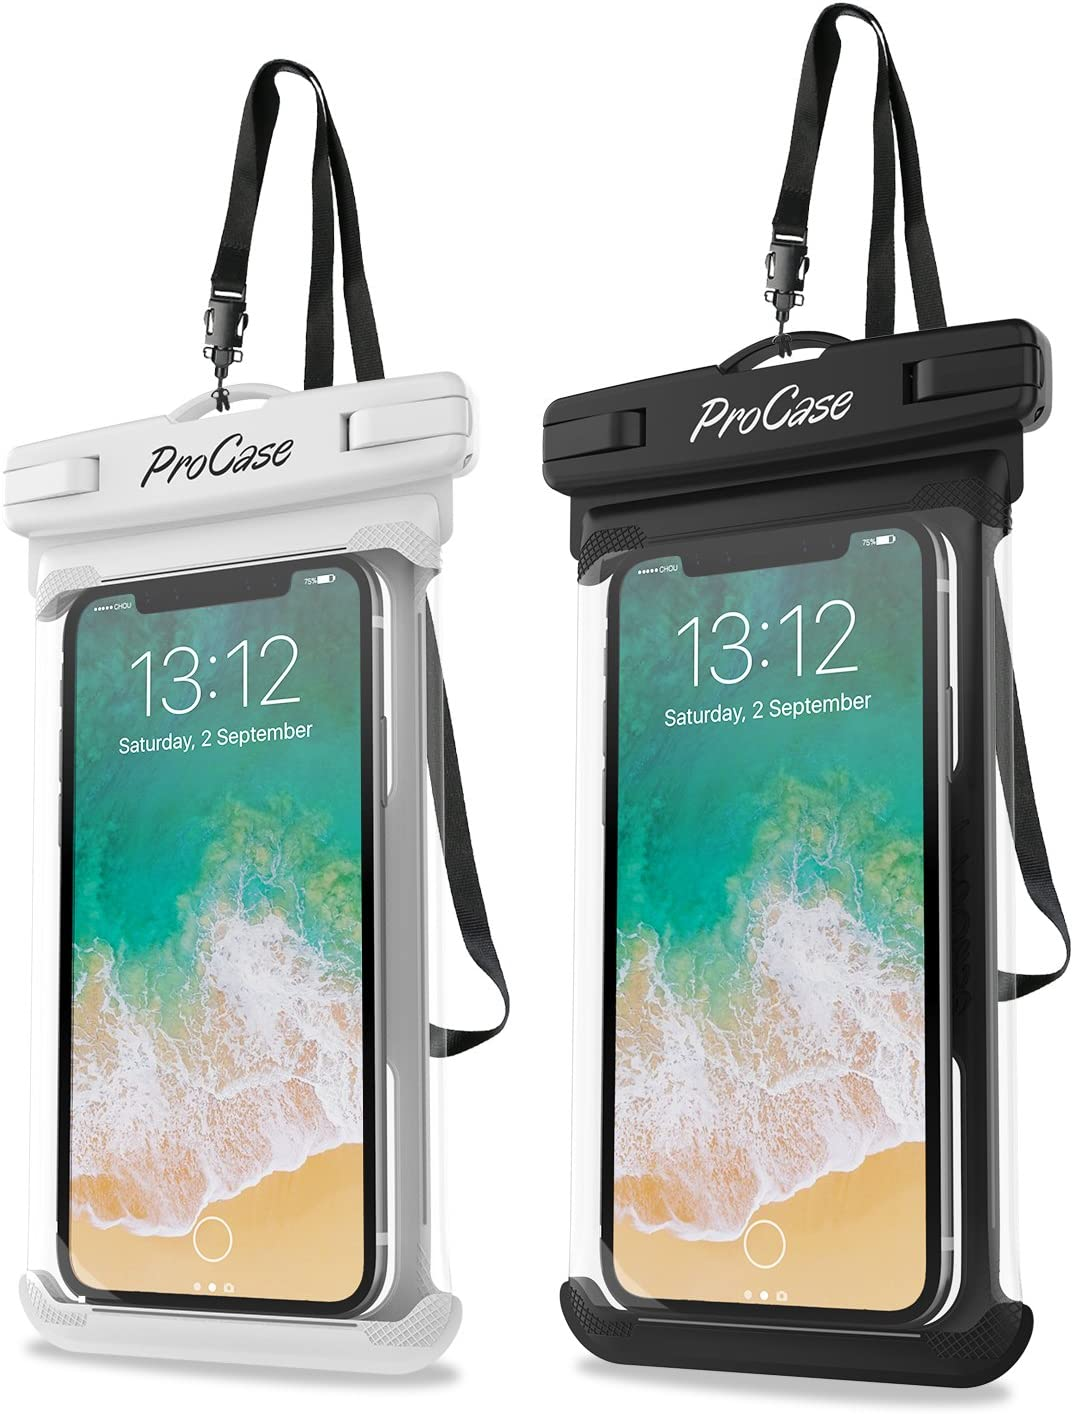 """ProCase Universal Waterproof Case Cellphone Dry Bag Pouch for iPhone 11 Pro Max Xs Max XR XS X 8 7 6S Plus SE 2020, Galaxy S20 Ultra S10 S9 S8 +/Note 10+ 9, Pixel 4 XL up to 6.9""""- 2 Pack, White/Black"""